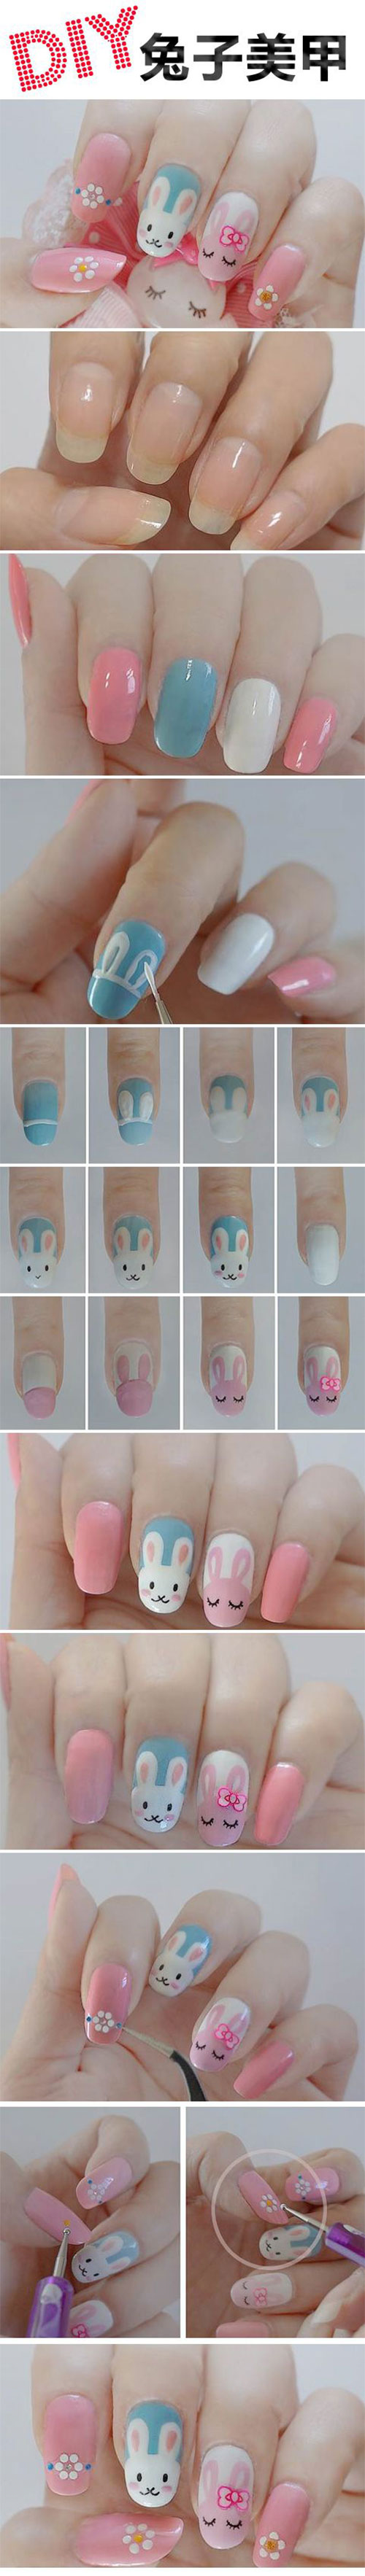 18-Easter-Nail-Art-Tutorials-For-Beginners-Learners-2016-16